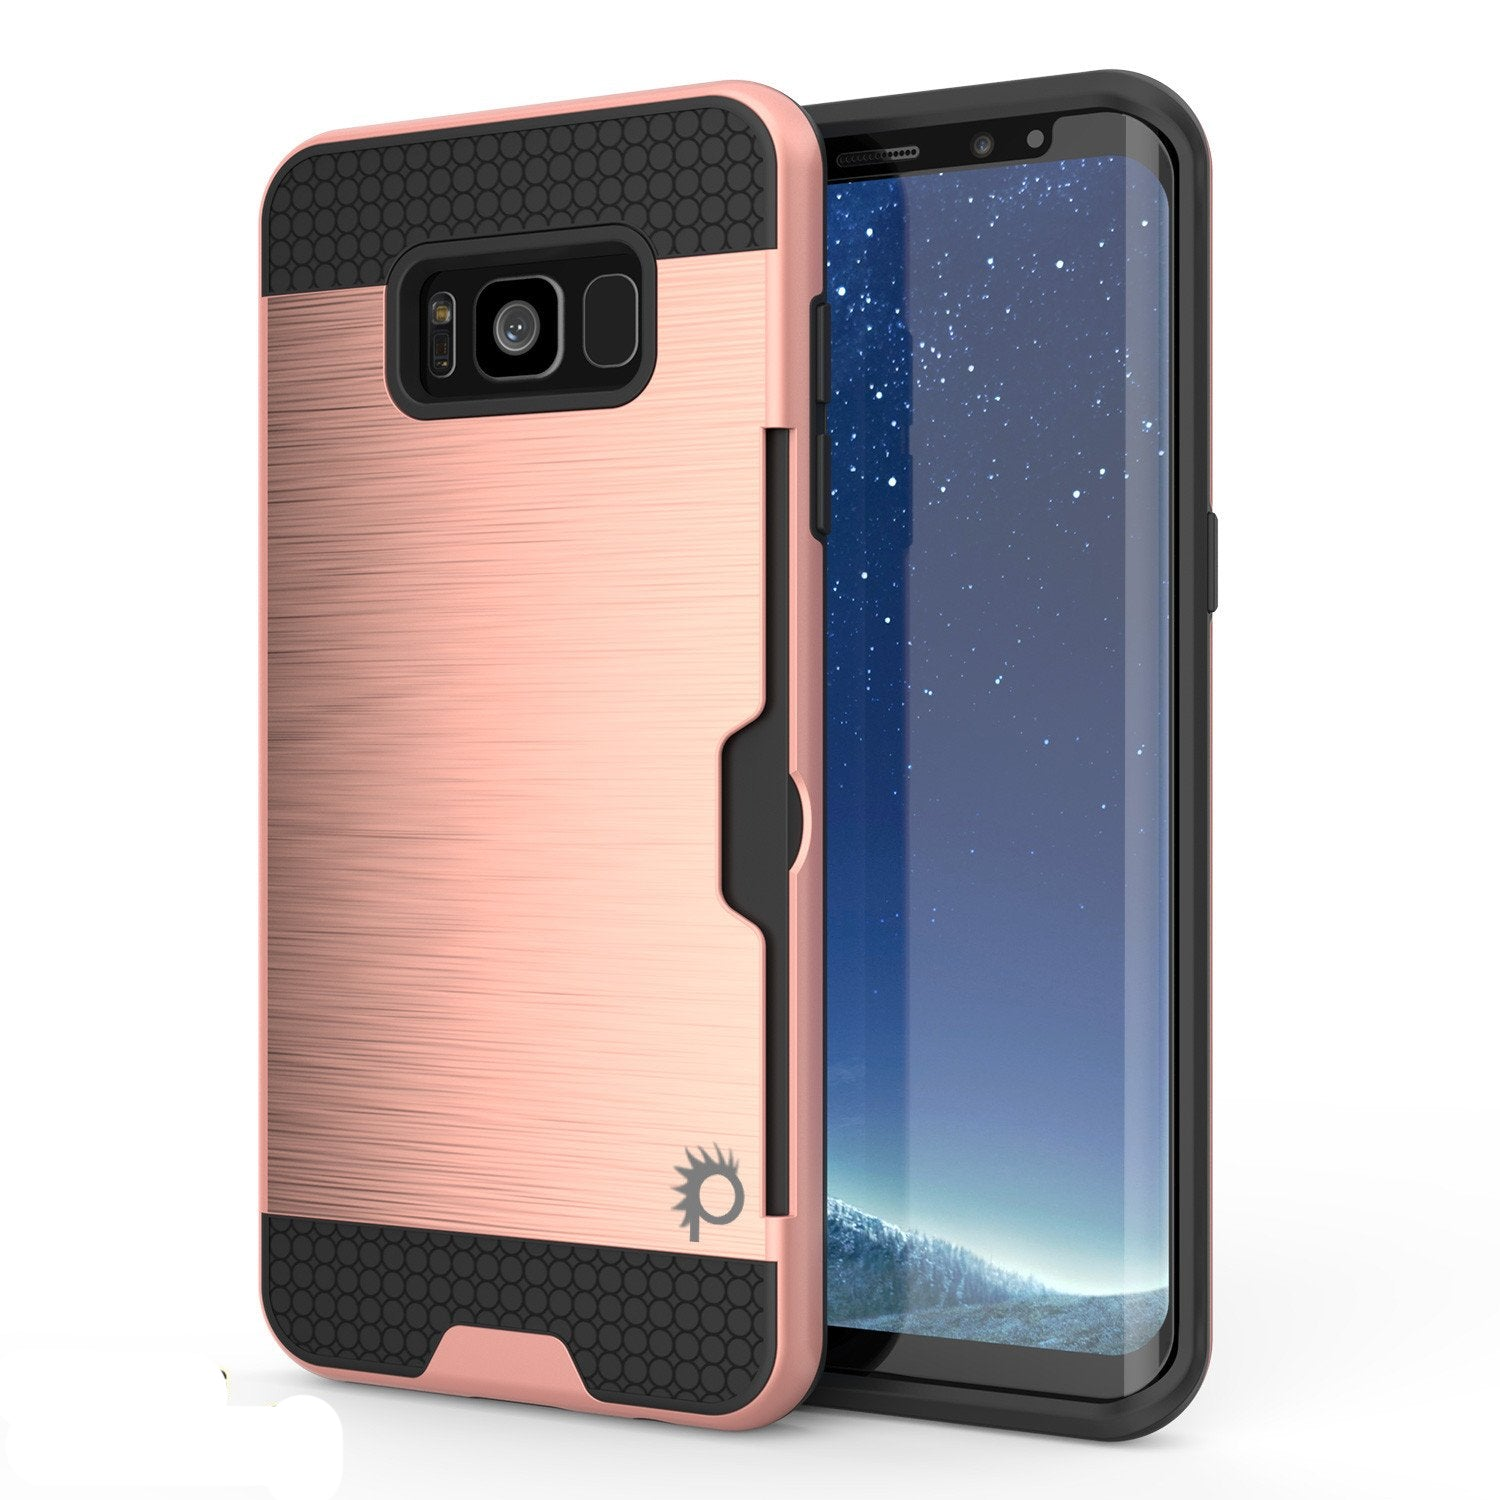 Galaxy S8 Case, PUNKcase [SLOT Series] [Slim Fit] Dual-Layer Armor Cover w/Integrated Anti-Shock System, Credit Card Slot